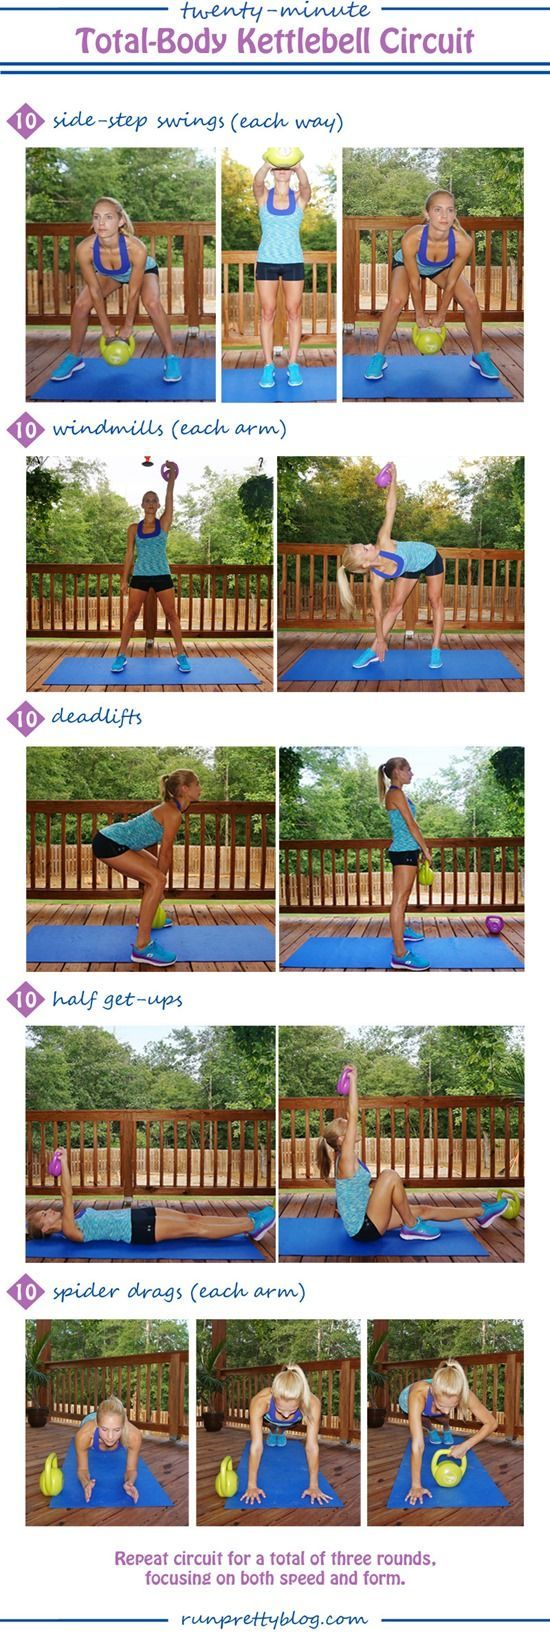 More exercise import More exercise important for people with genetic Alzheimers risk https://www.pinterest.com/pin/35677022026366645/